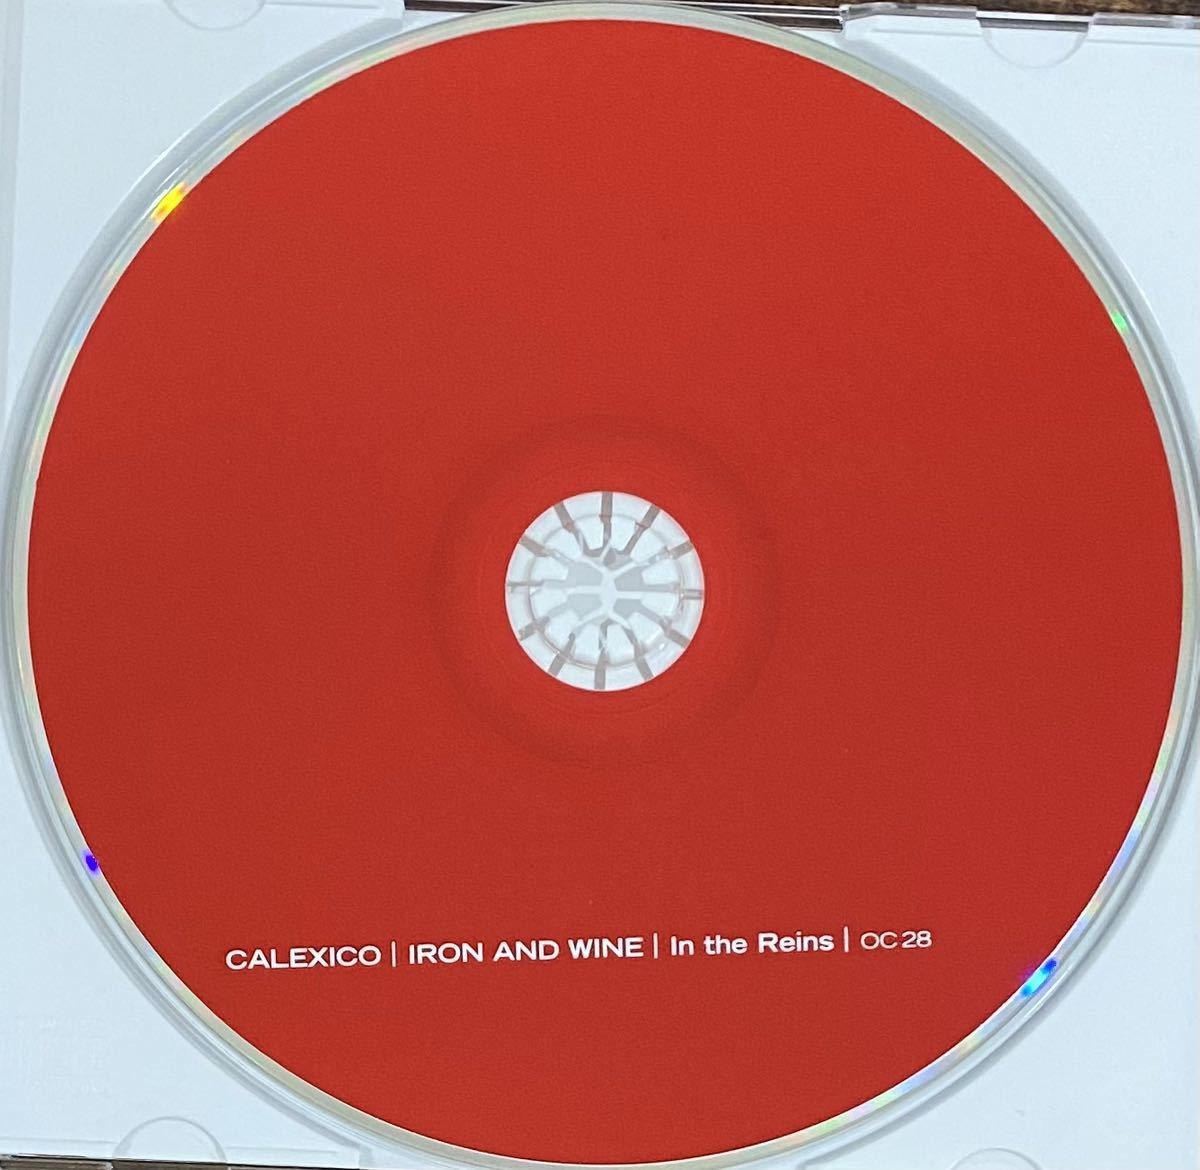 CD】IRON AND WINE with CALEXICO アイアン・アンド・ワイン■in the reins■オルタナ・フォーク名盤■キャレキシコ